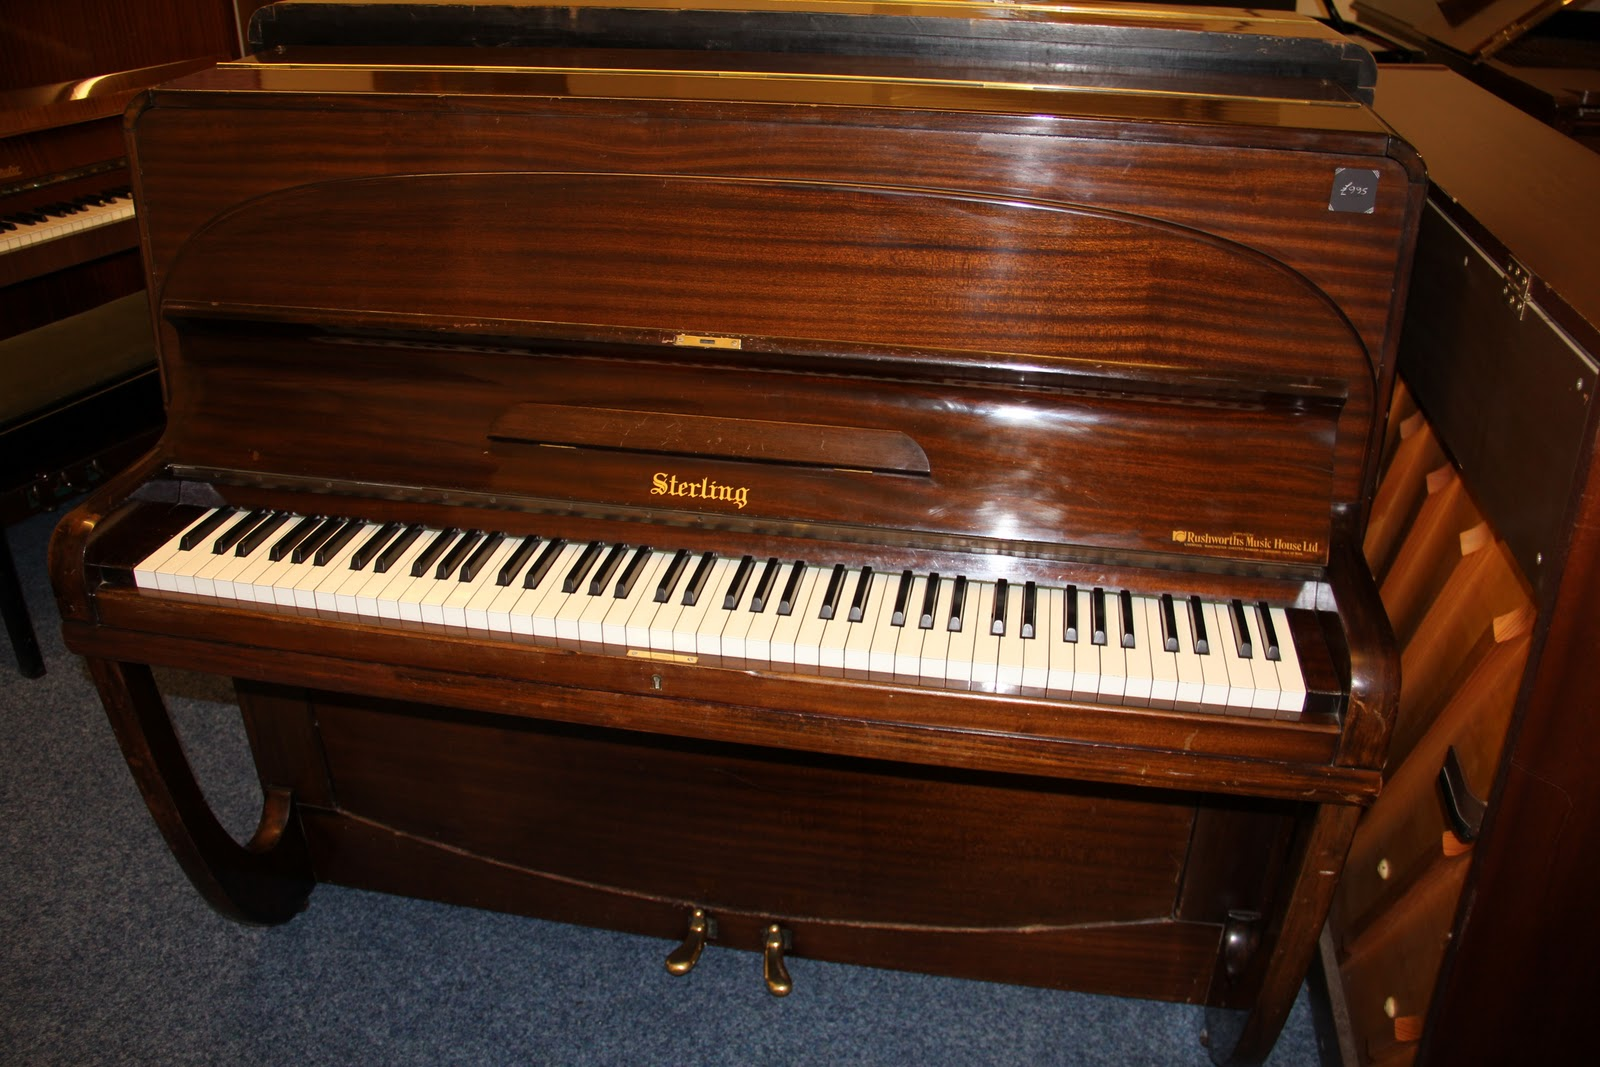 small pianos for sale looking for a cheap or free piano 0845 226 8204. Black Bedroom Furniture Sets. Home Design Ideas